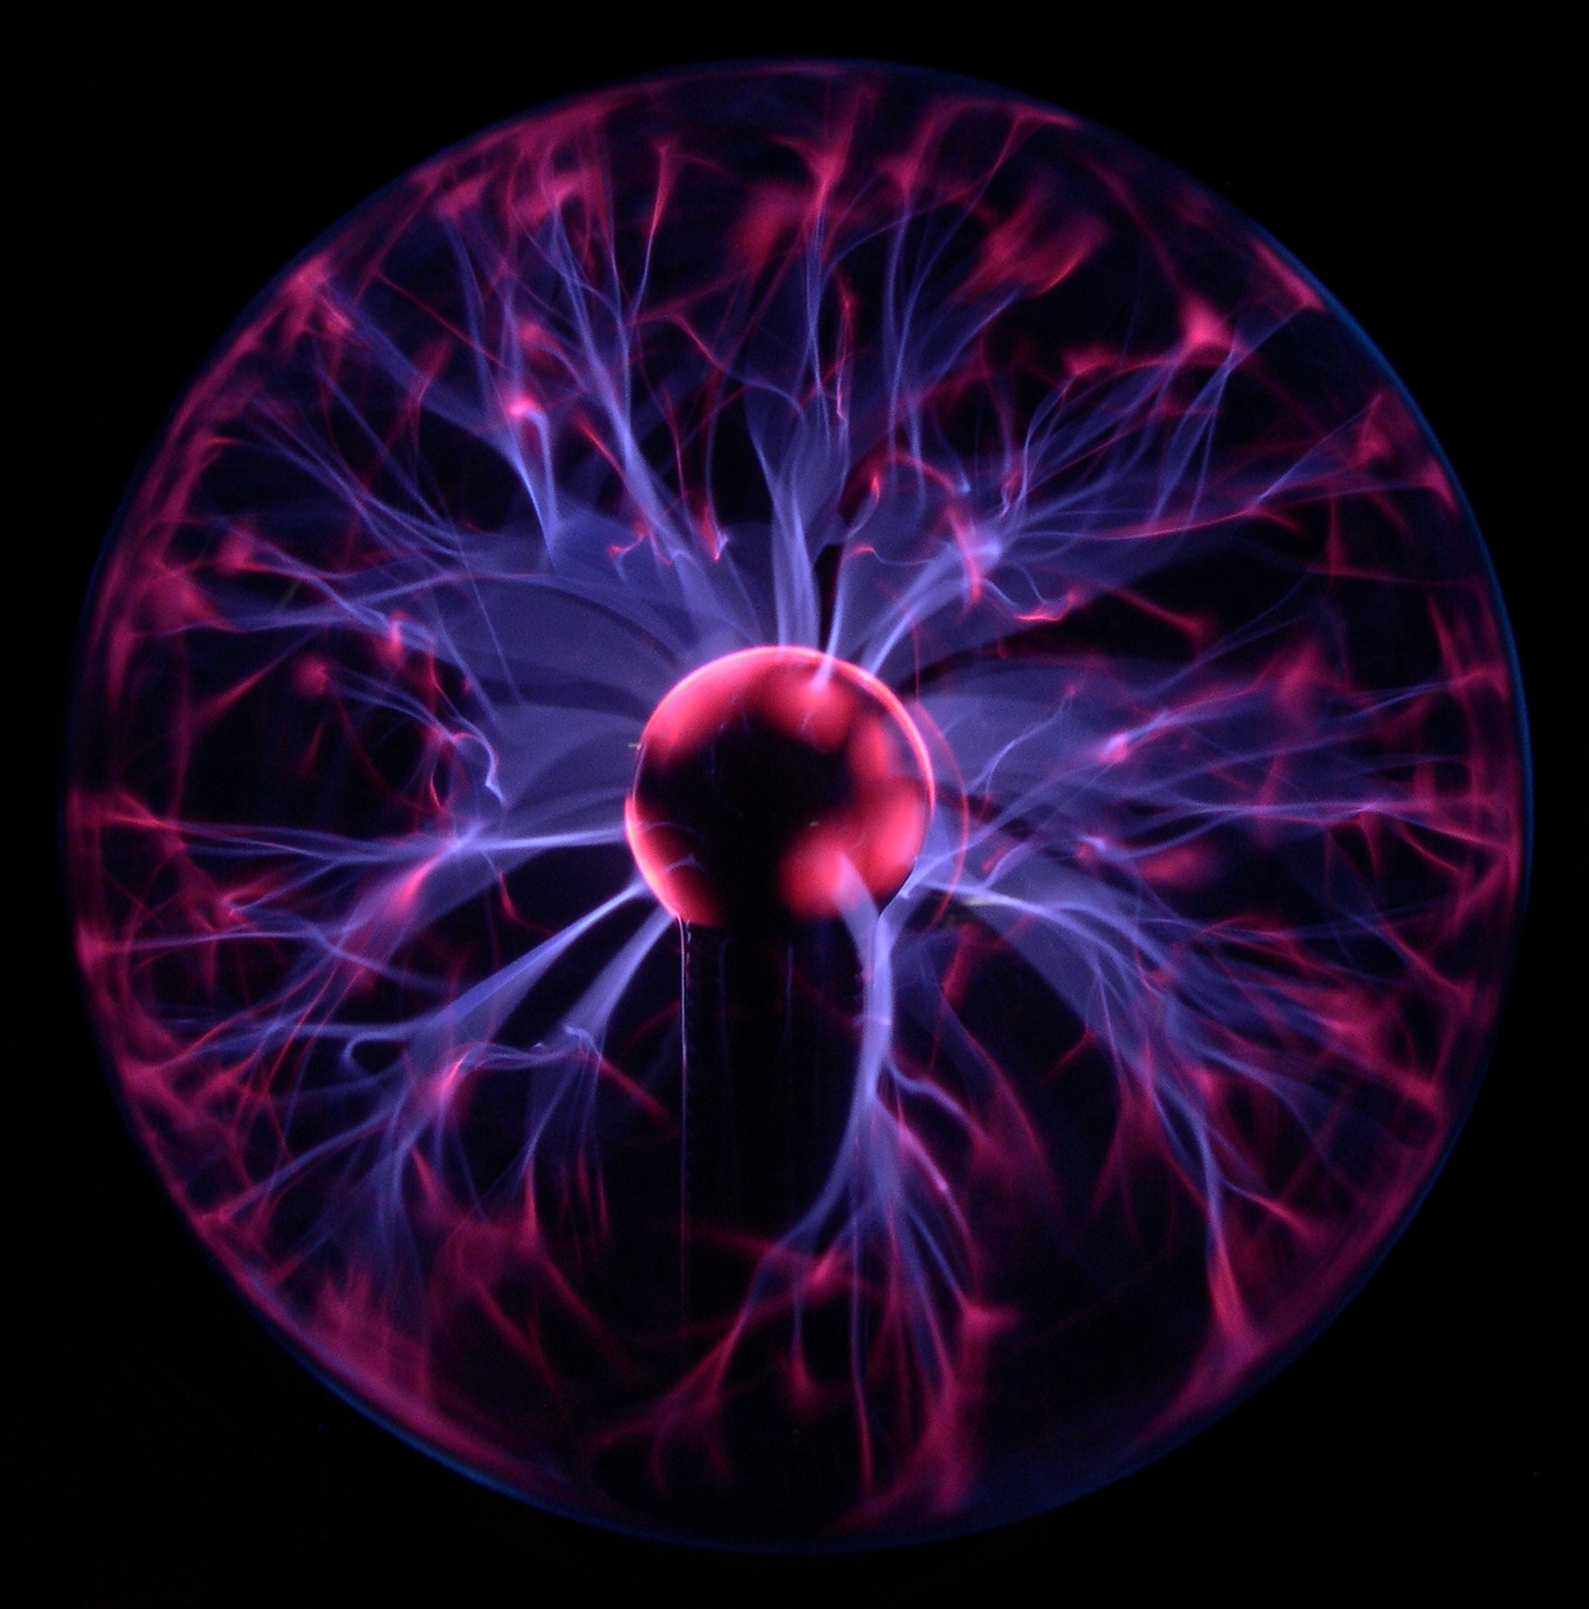 Plasma Displays and Plasma Physics | letstalkaboutscience